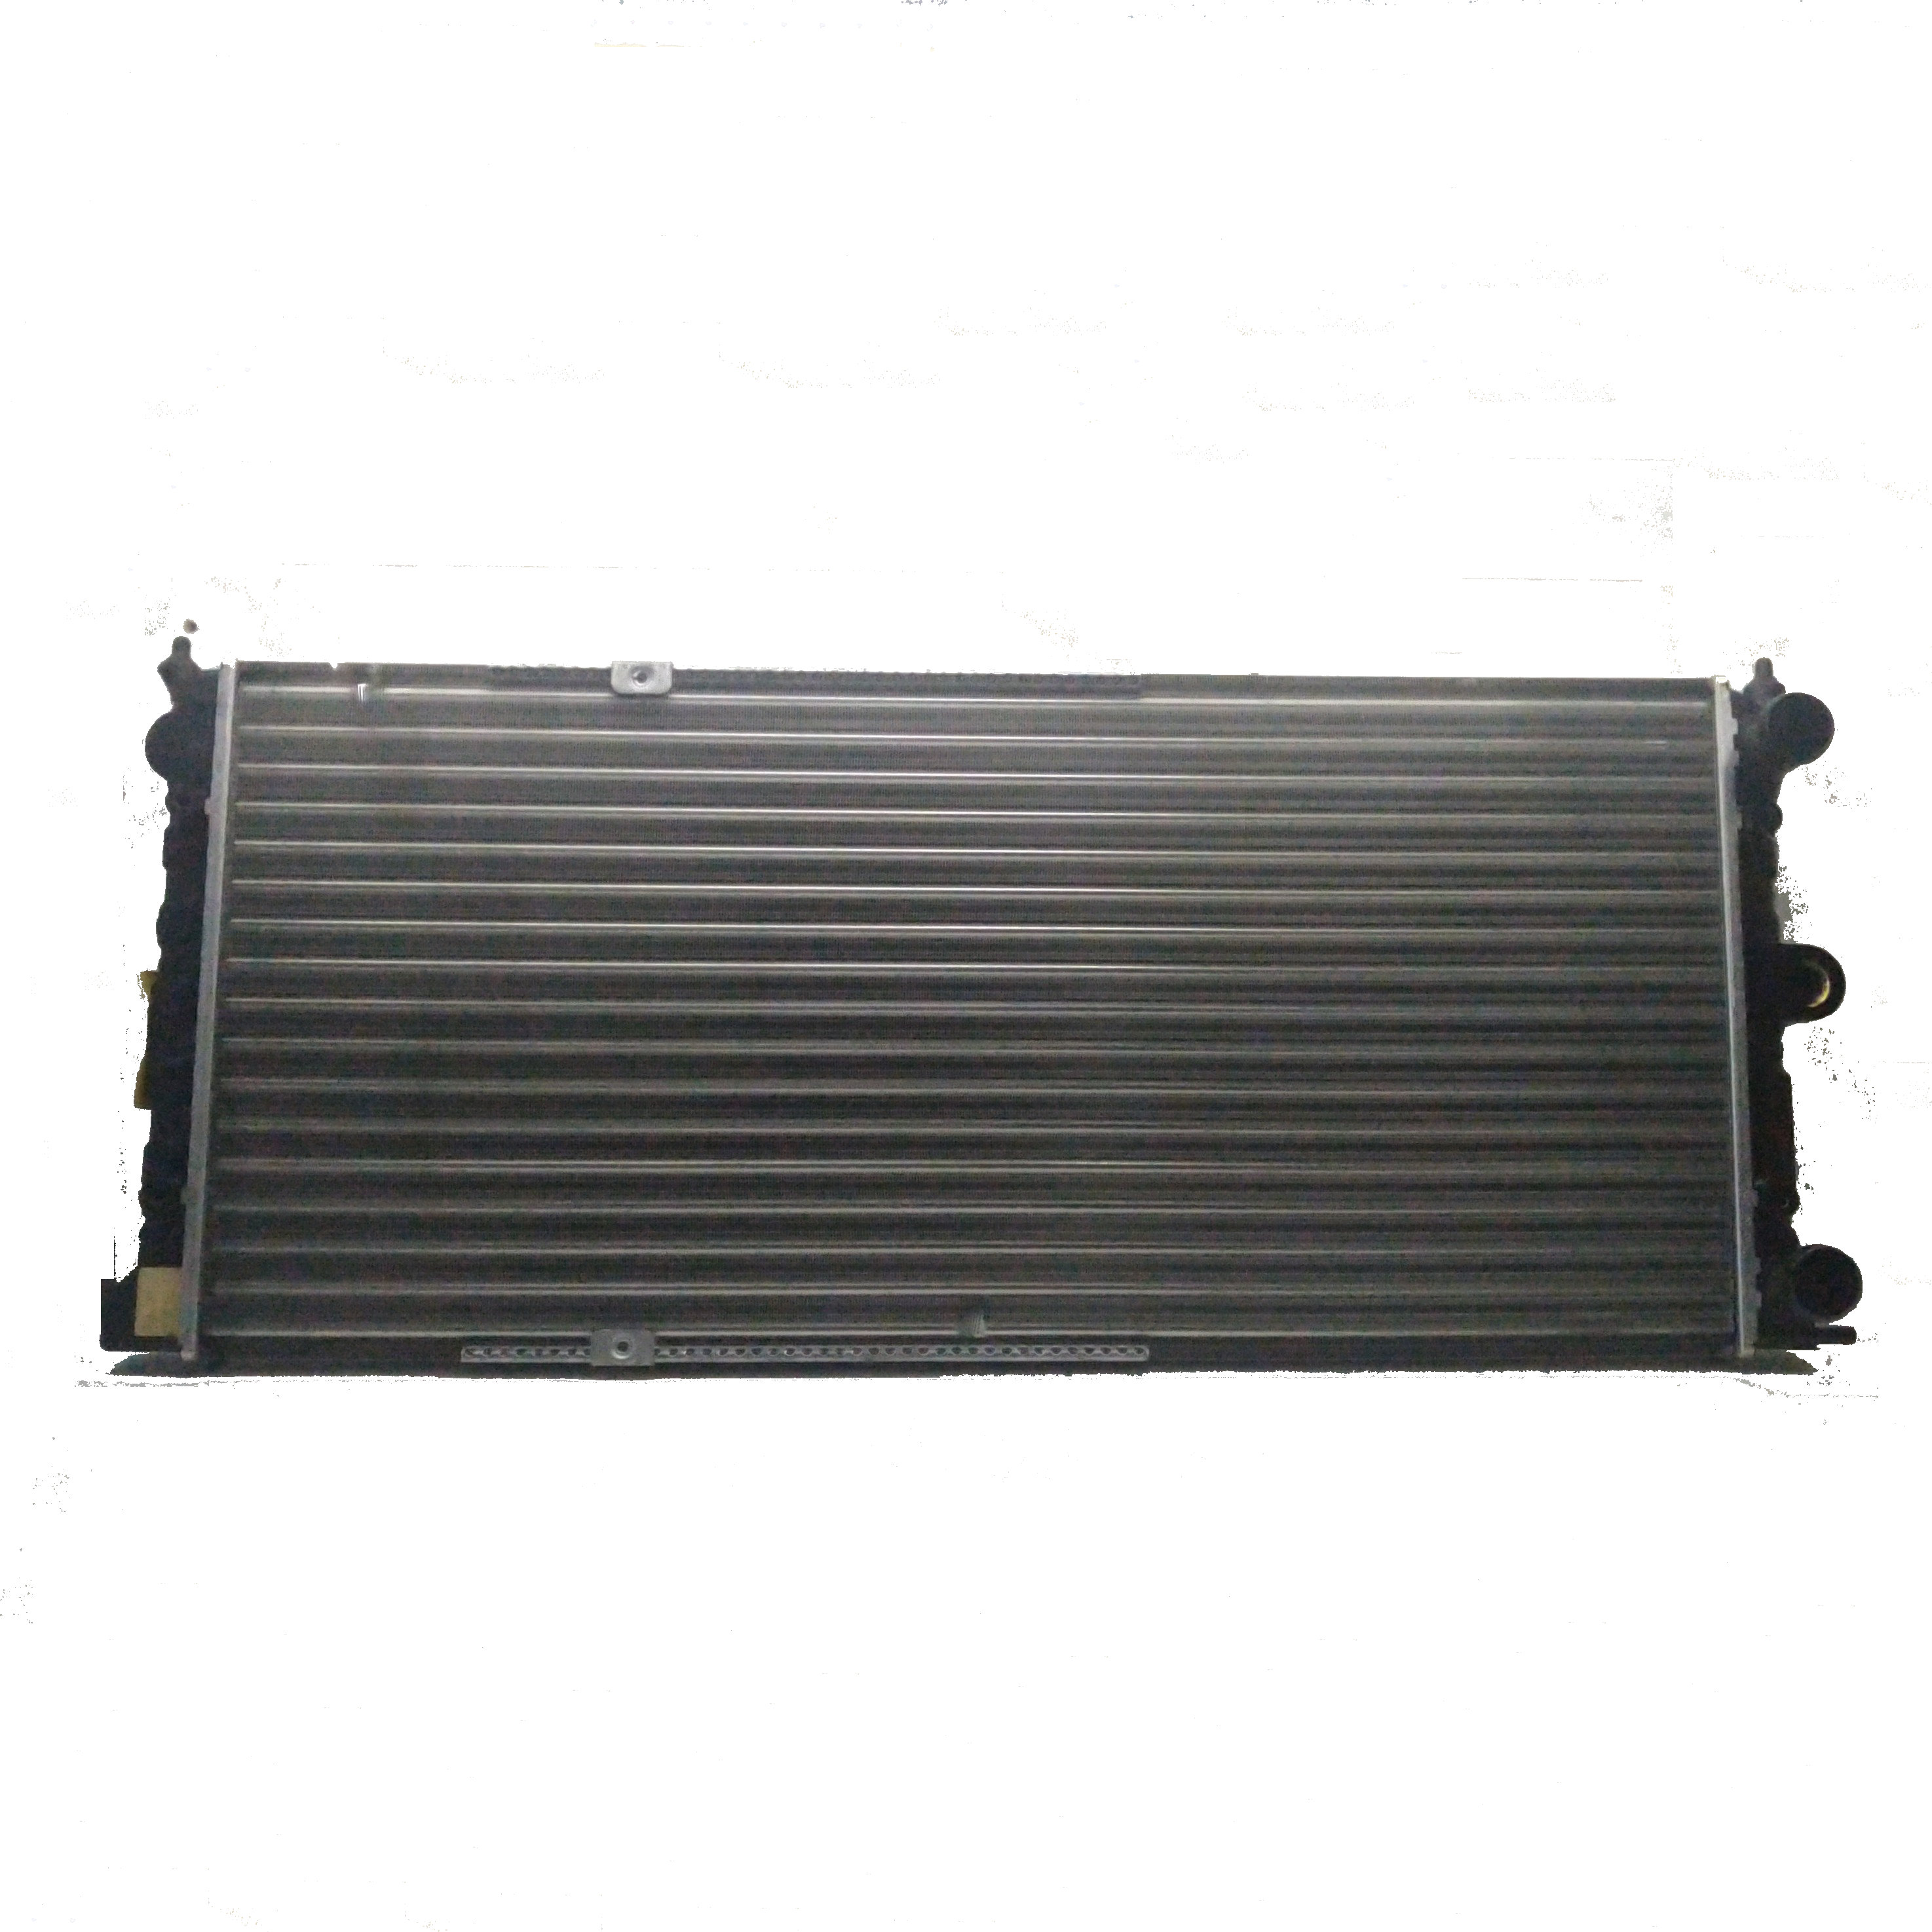 VW PASSAT ENGINE COOLING RADIATOR - SANTANA VALEO FOR 321121251AJ